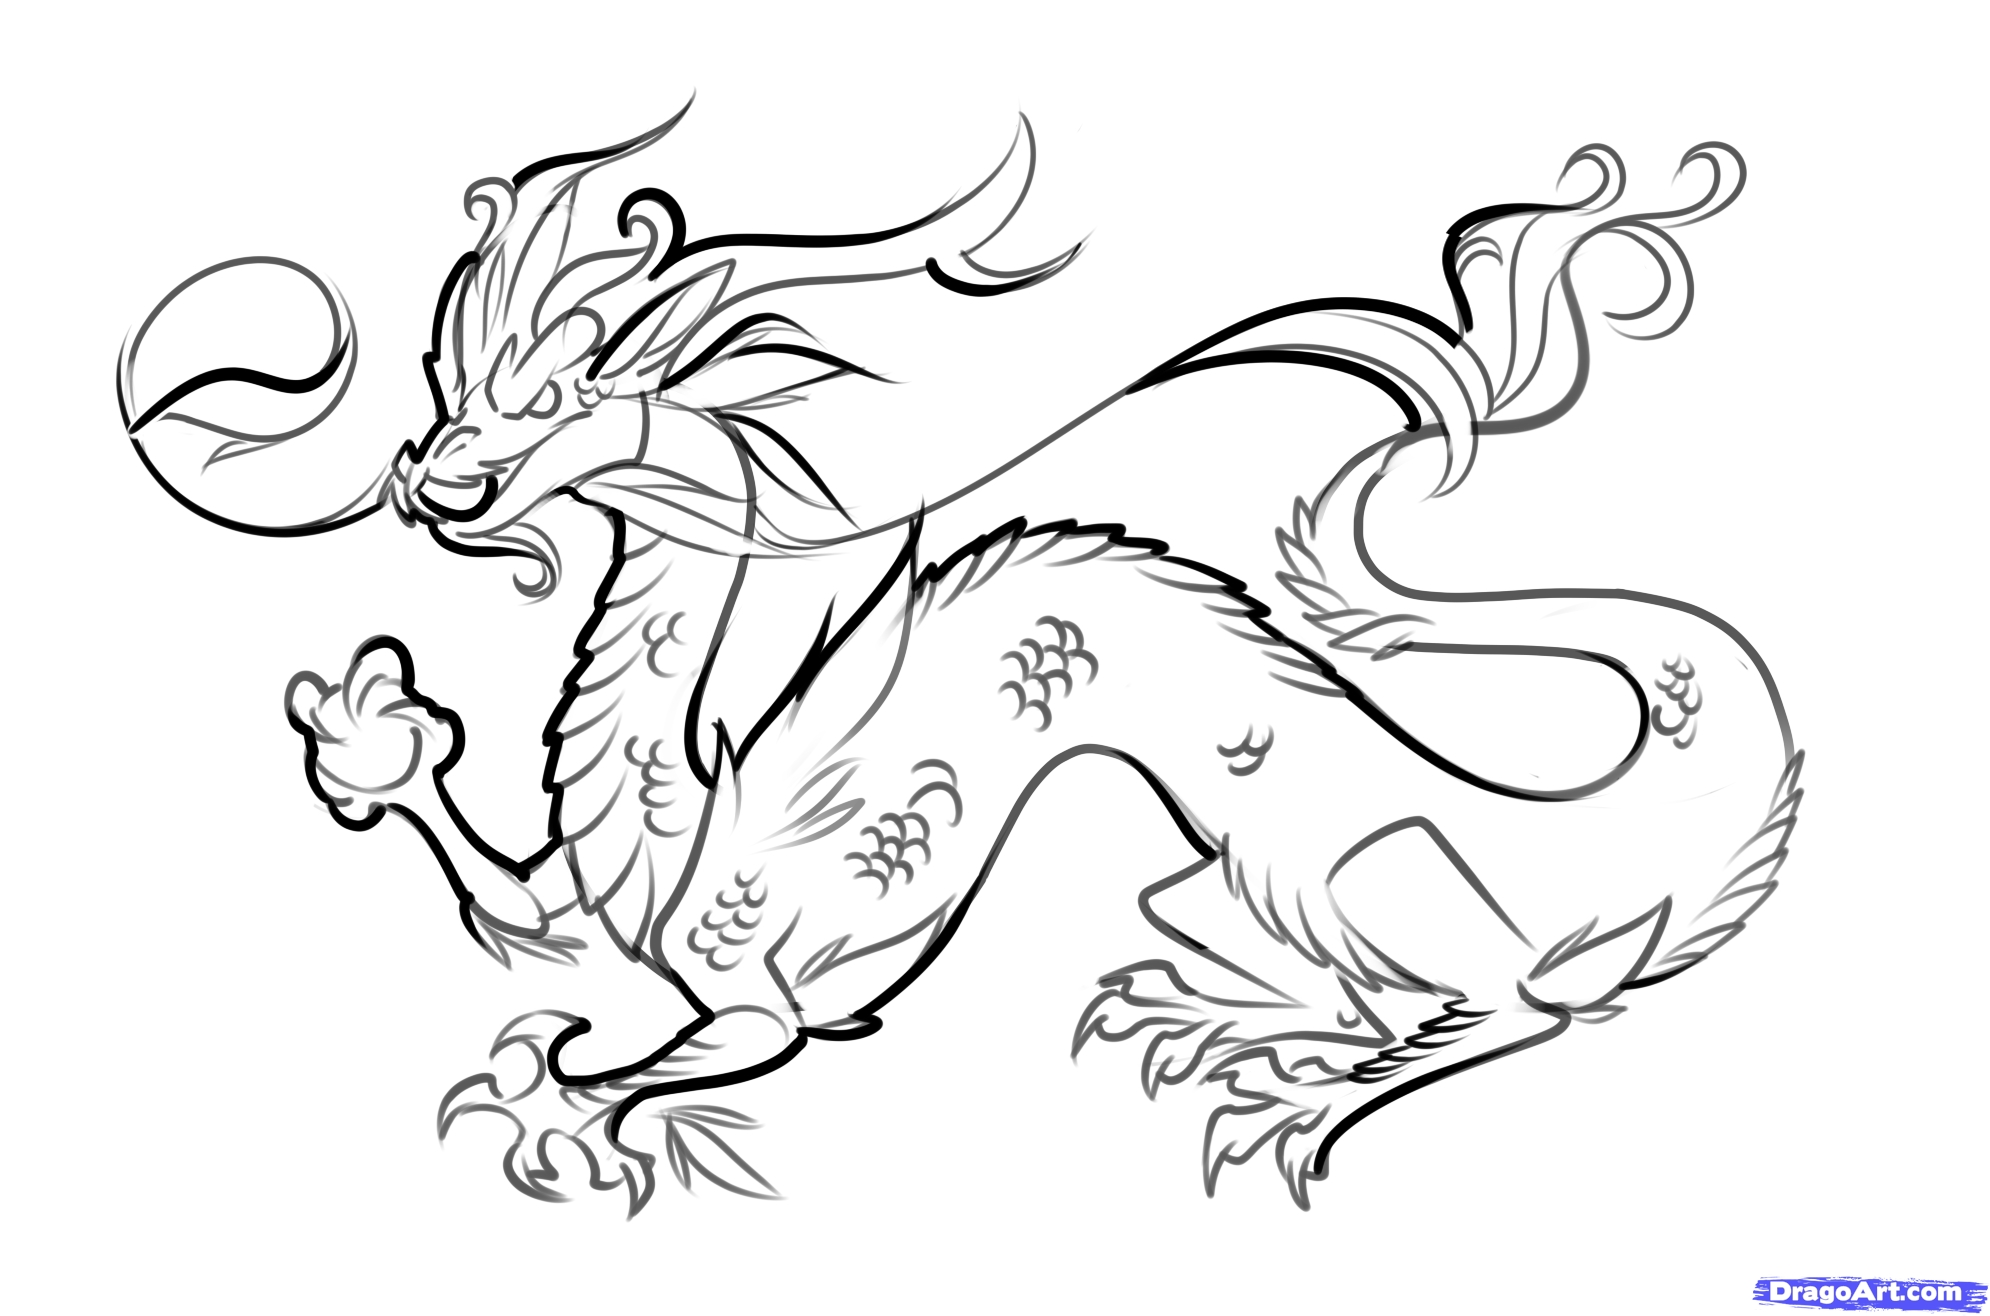 Dragon clipart black and white Lovely Chinese Dragon clipart easy.